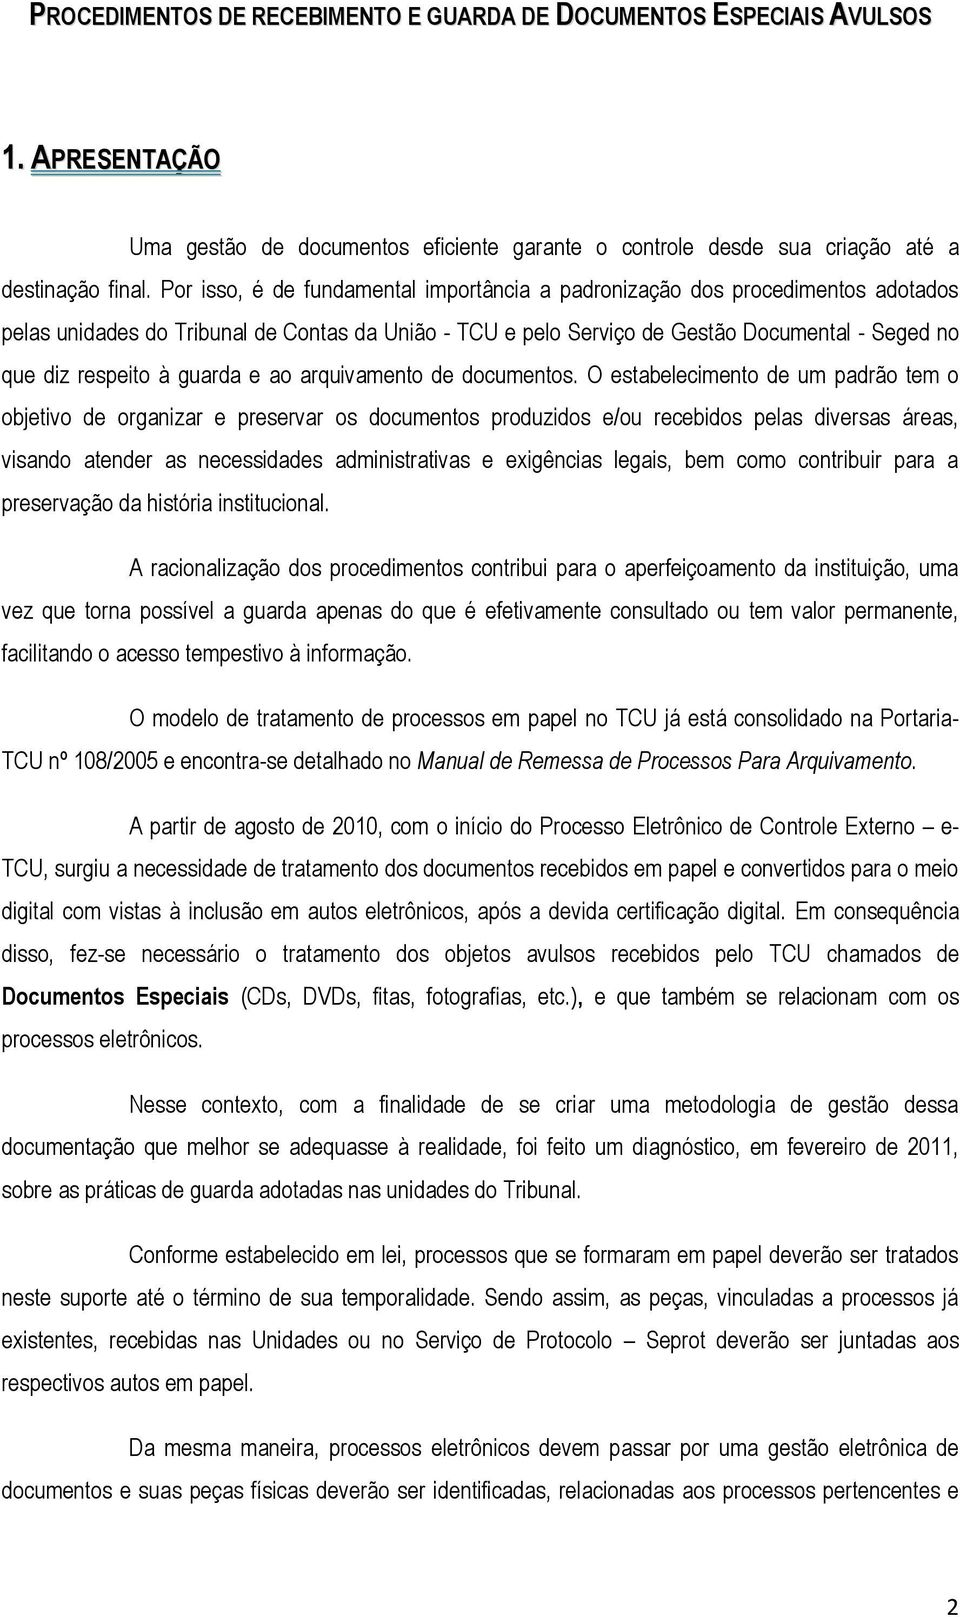 guarda e ao arquivamento de documentos.